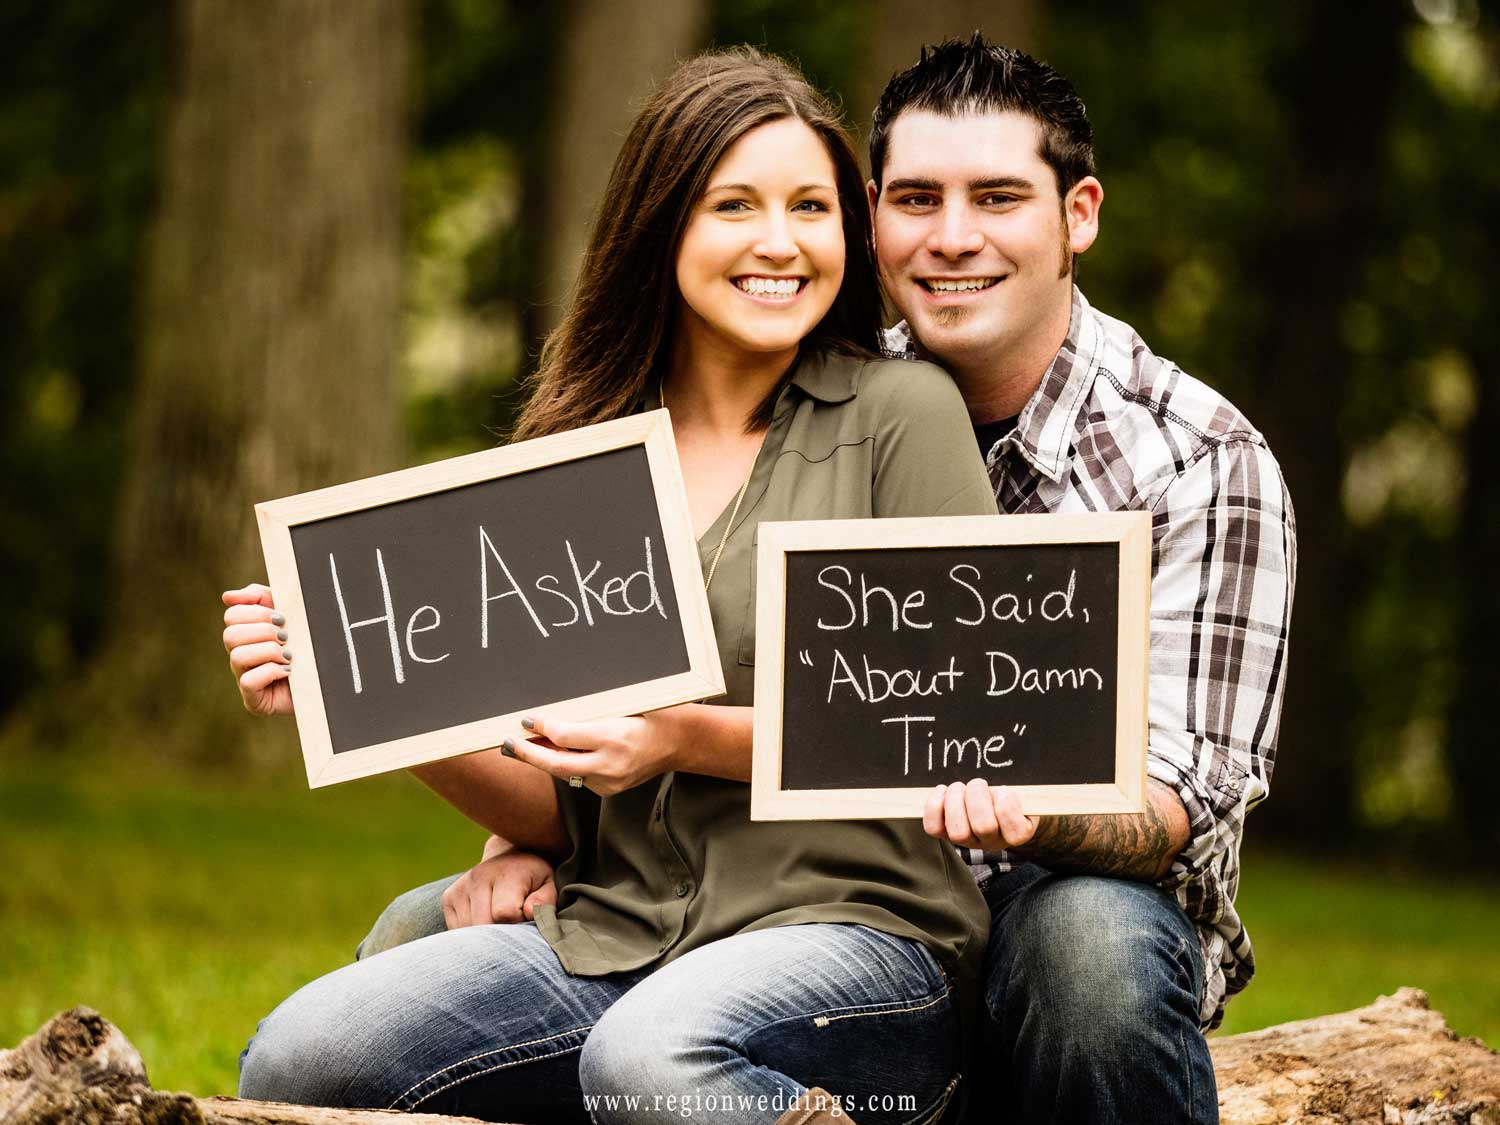 Engagement photo with fun signs.